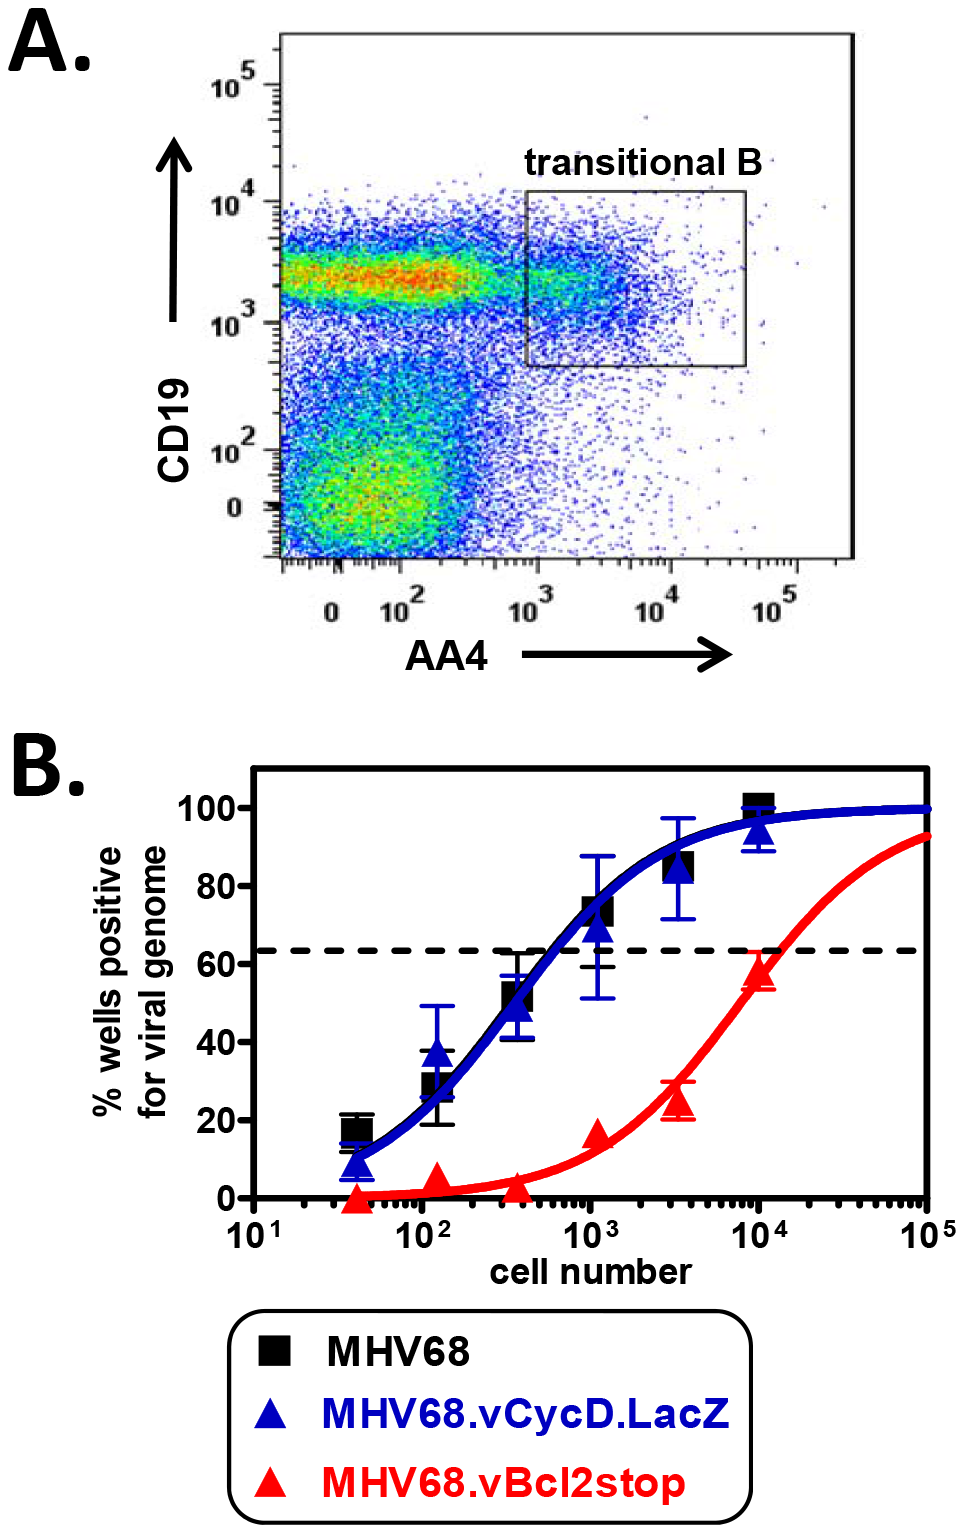 vBcl-2 is required for transitional B cell latency.